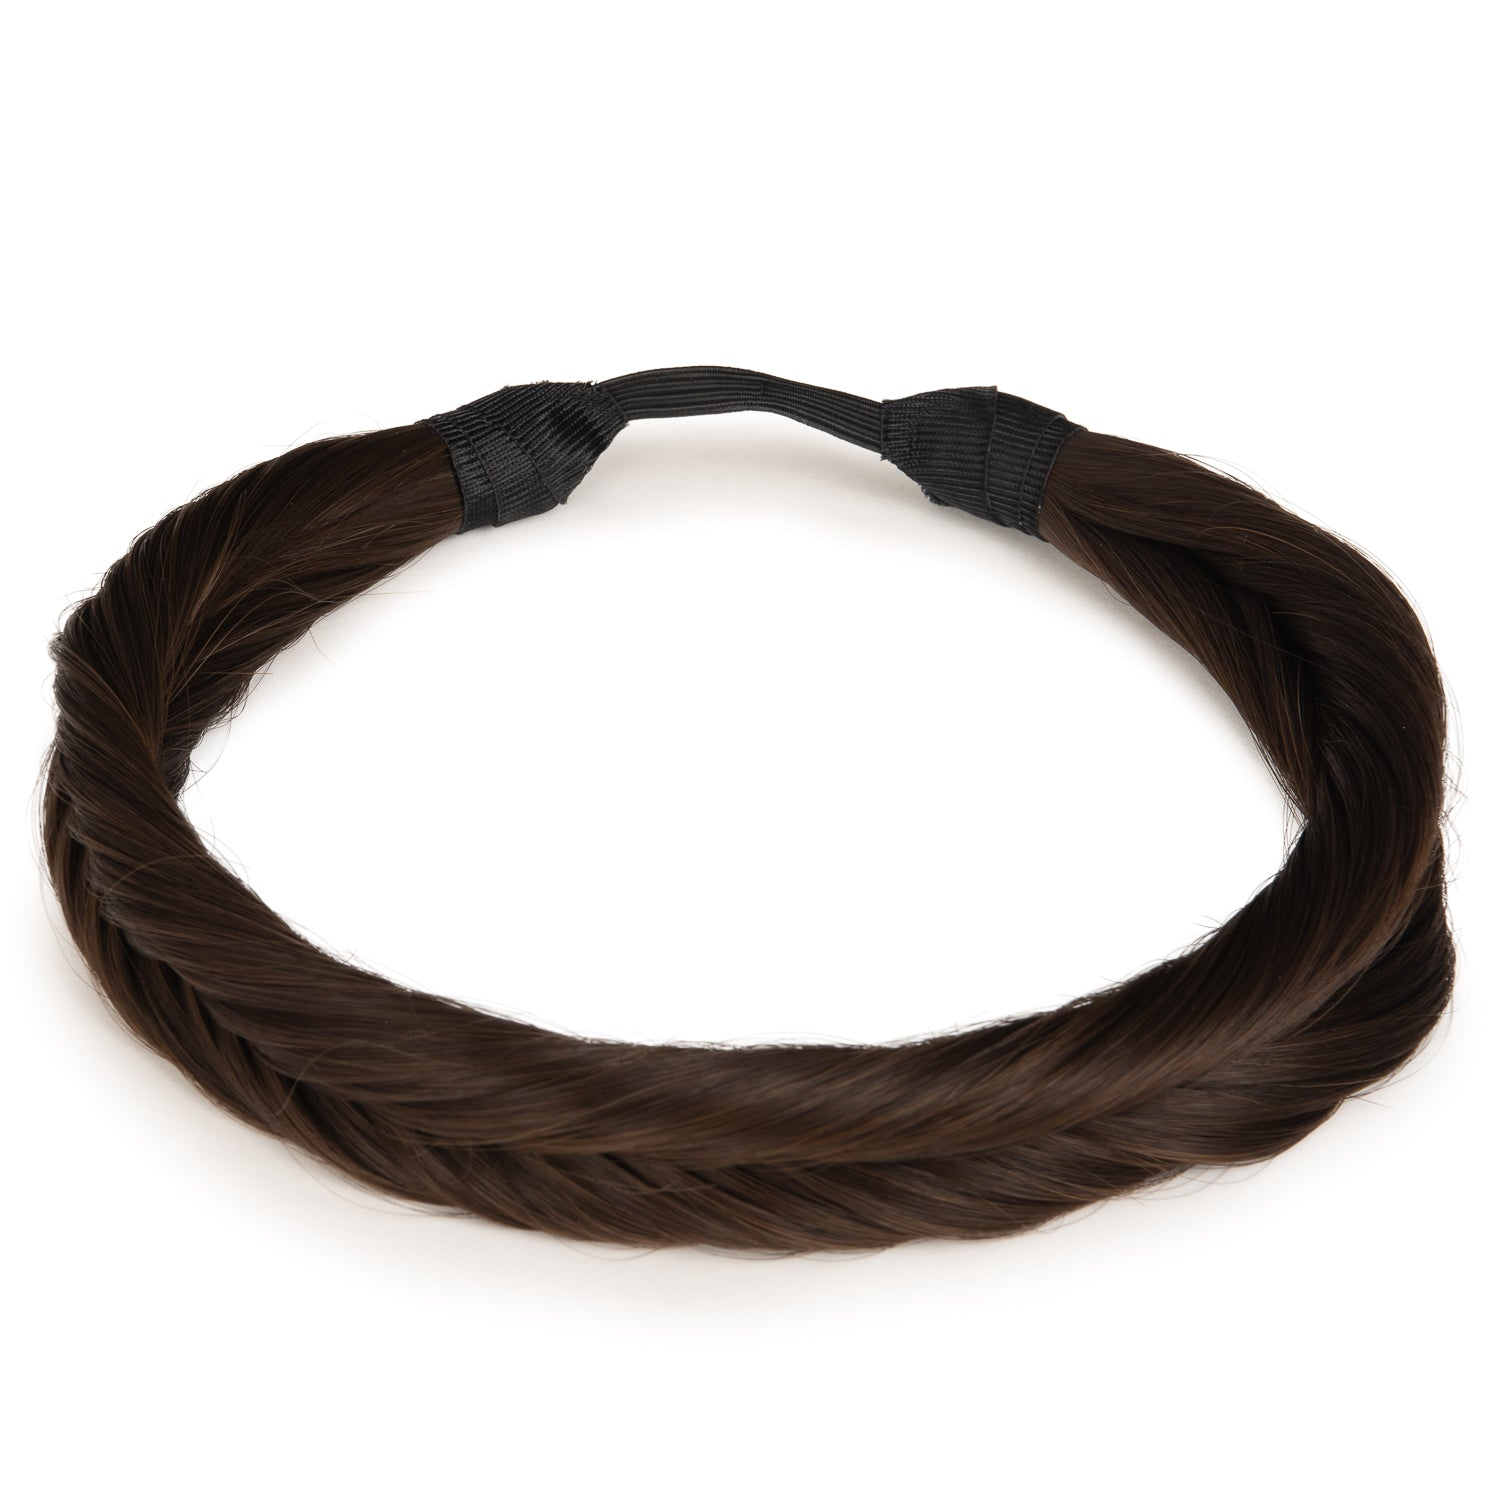 The Braided Headband - Medium Brown (180663365)